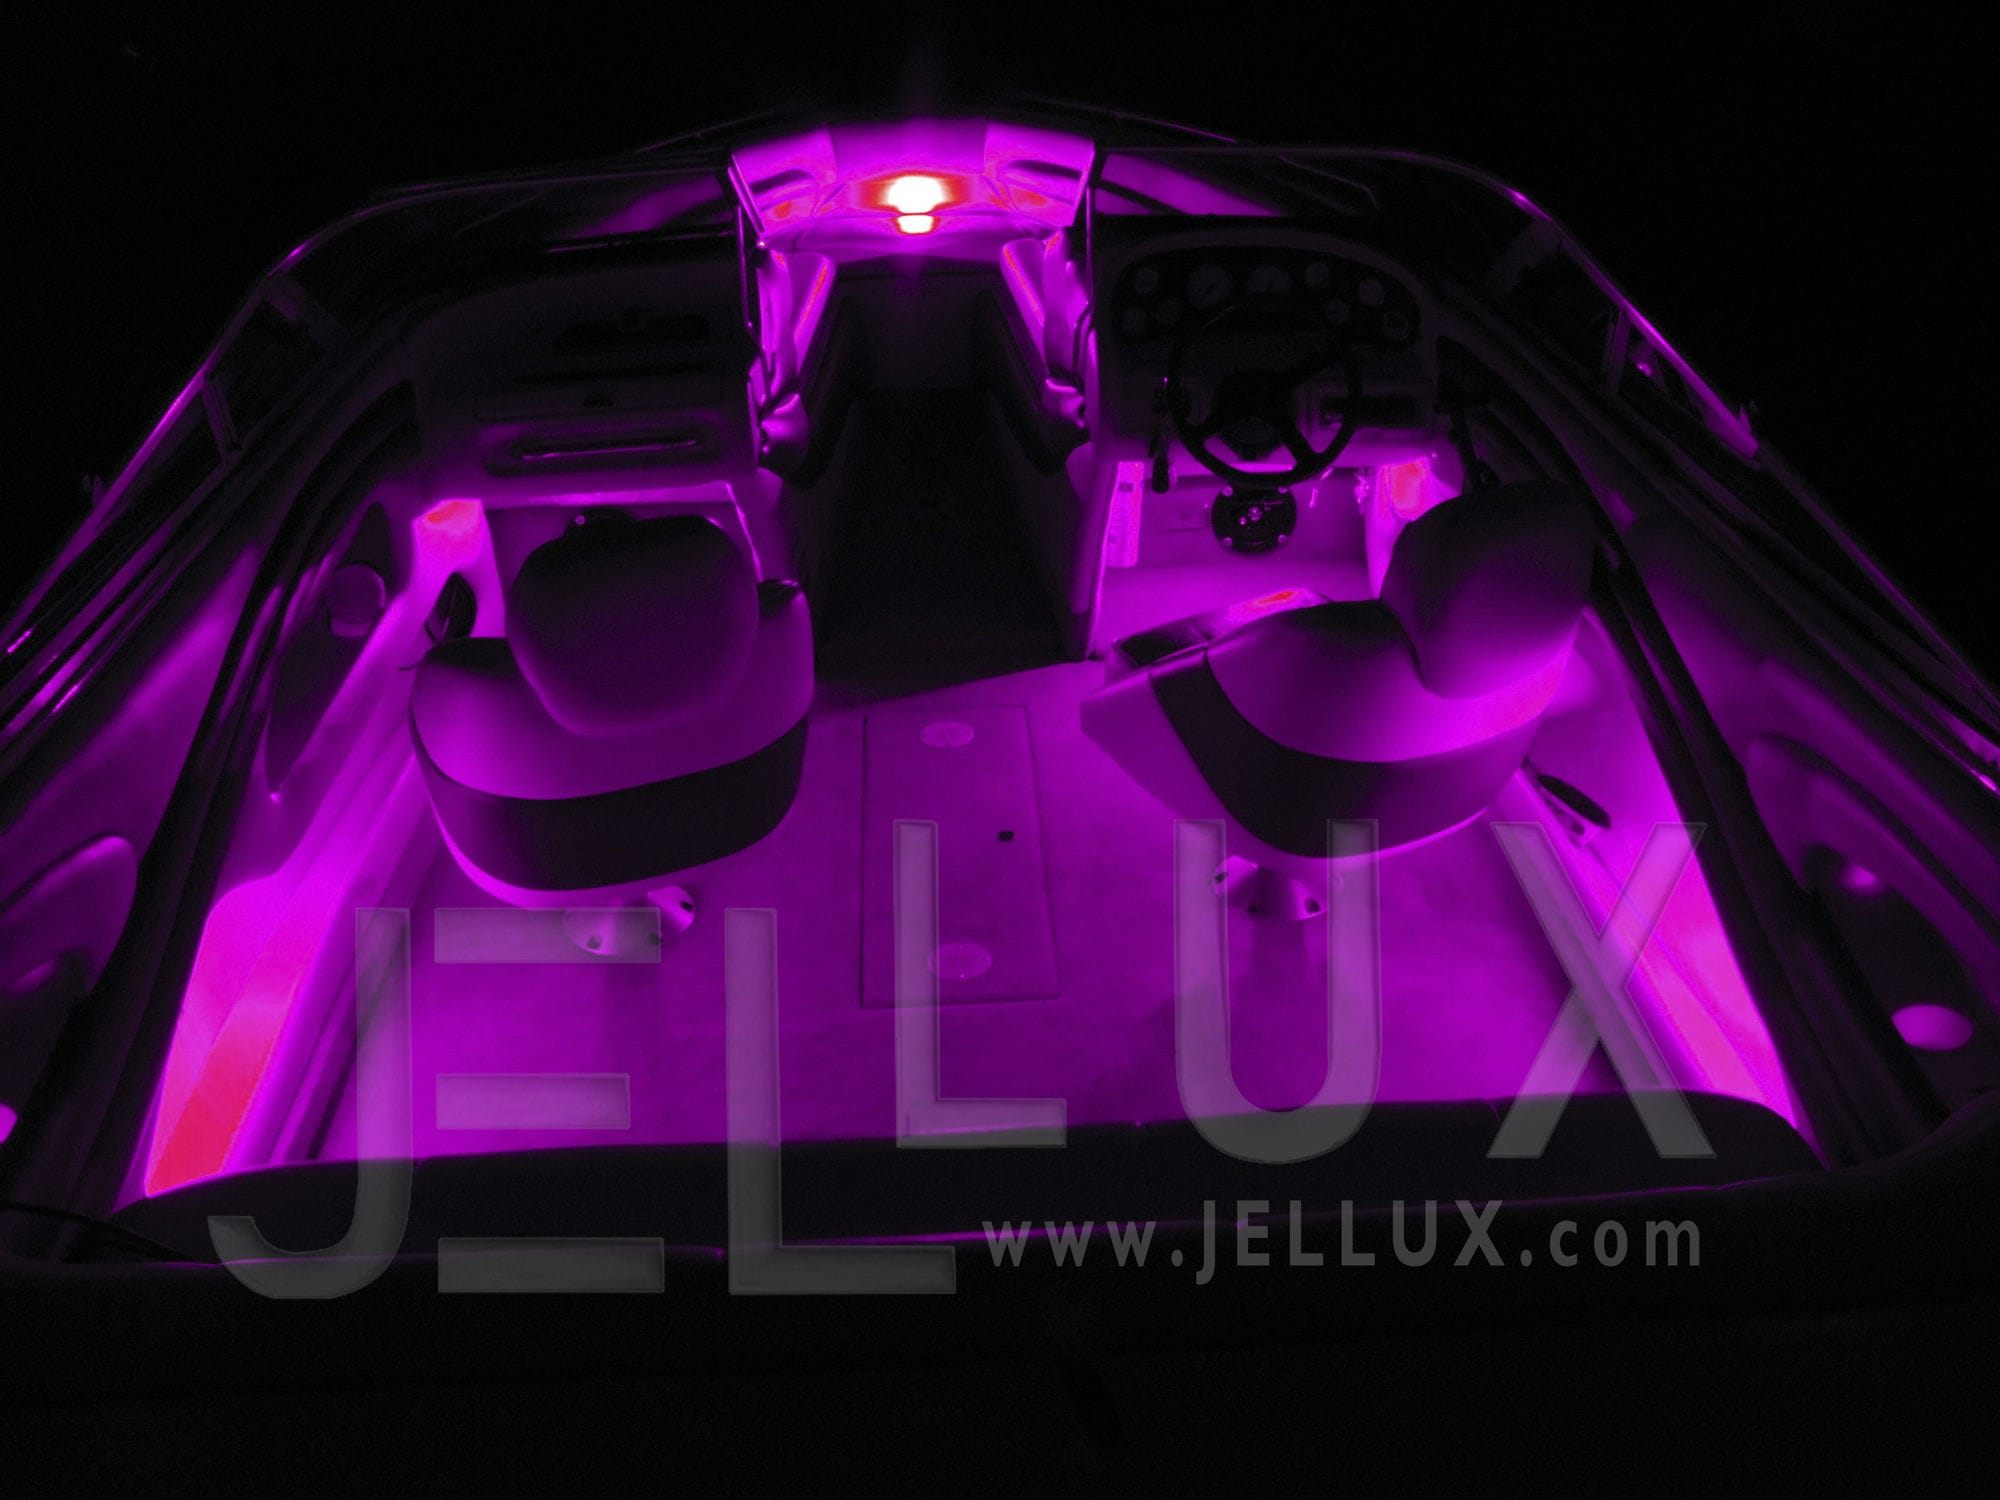 Outdoor light strip for boats led 6pcs 7 rf jellux advanced outdoor light strip for boats led 6pcs 7 rf aloadofball Image collections